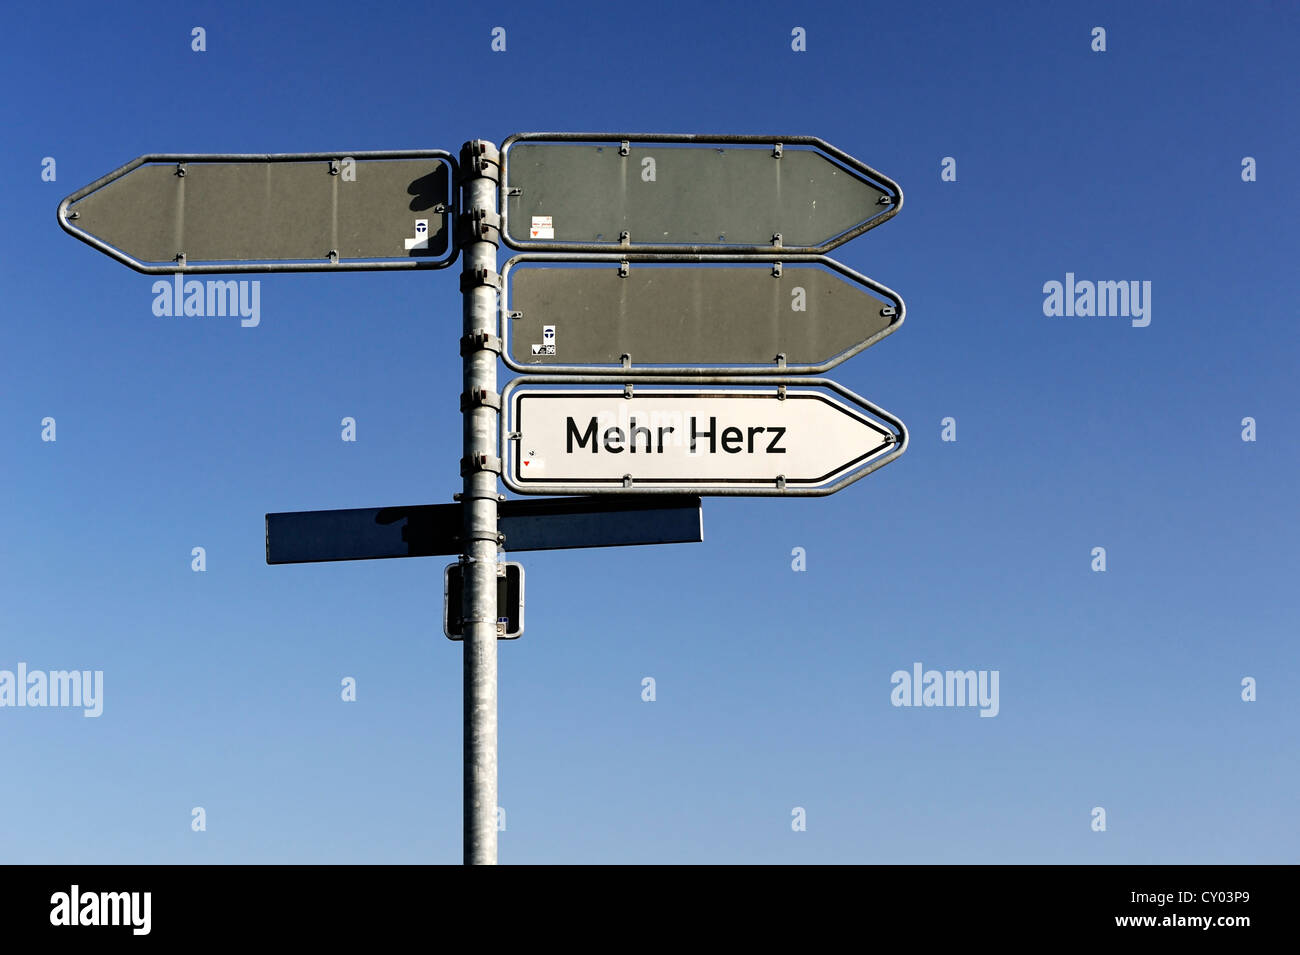 Signpost to 'Mehr Herz', German for 'more heart', symbolic image - Stock Image